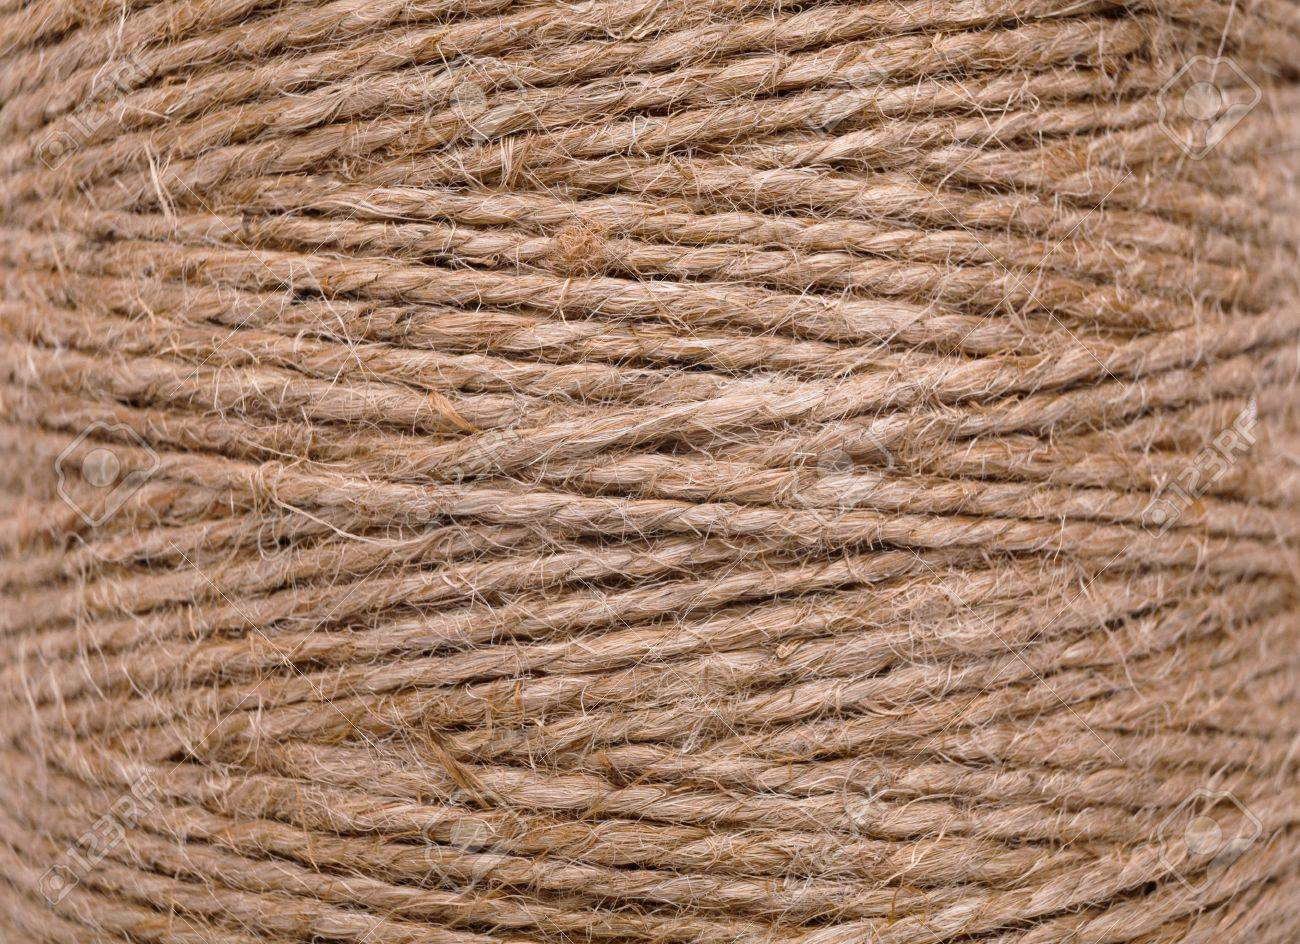 Natural Jute Twine Texture Close Up Of Twisted Rope Handmade Stock Photo Picture And Royalty Free Image Image 79095997